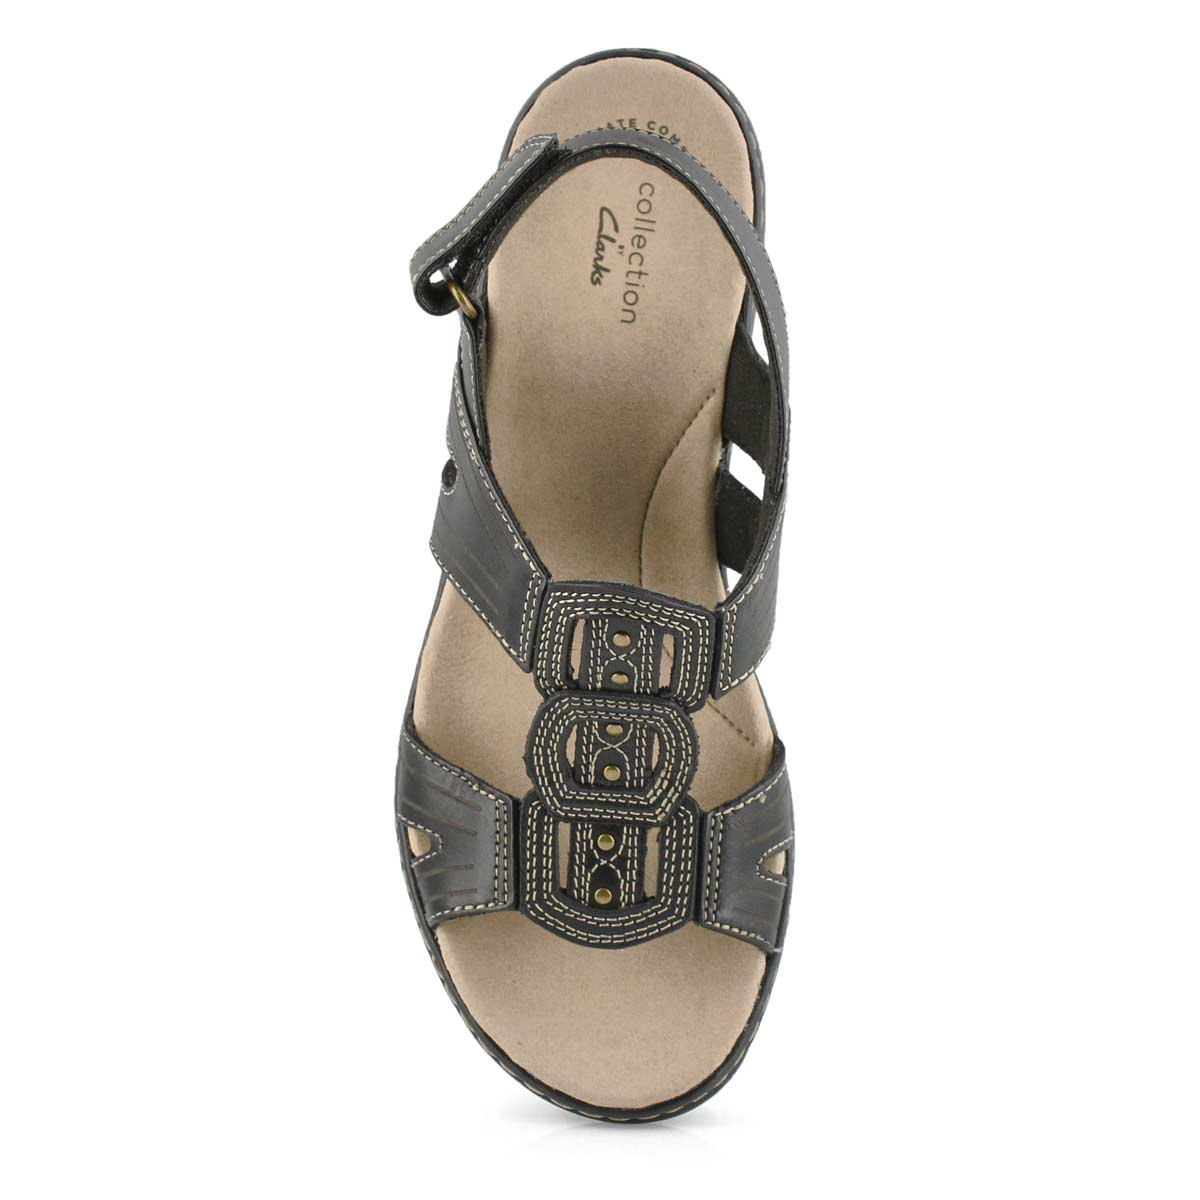 Lds Leisa Vine black casual sandal